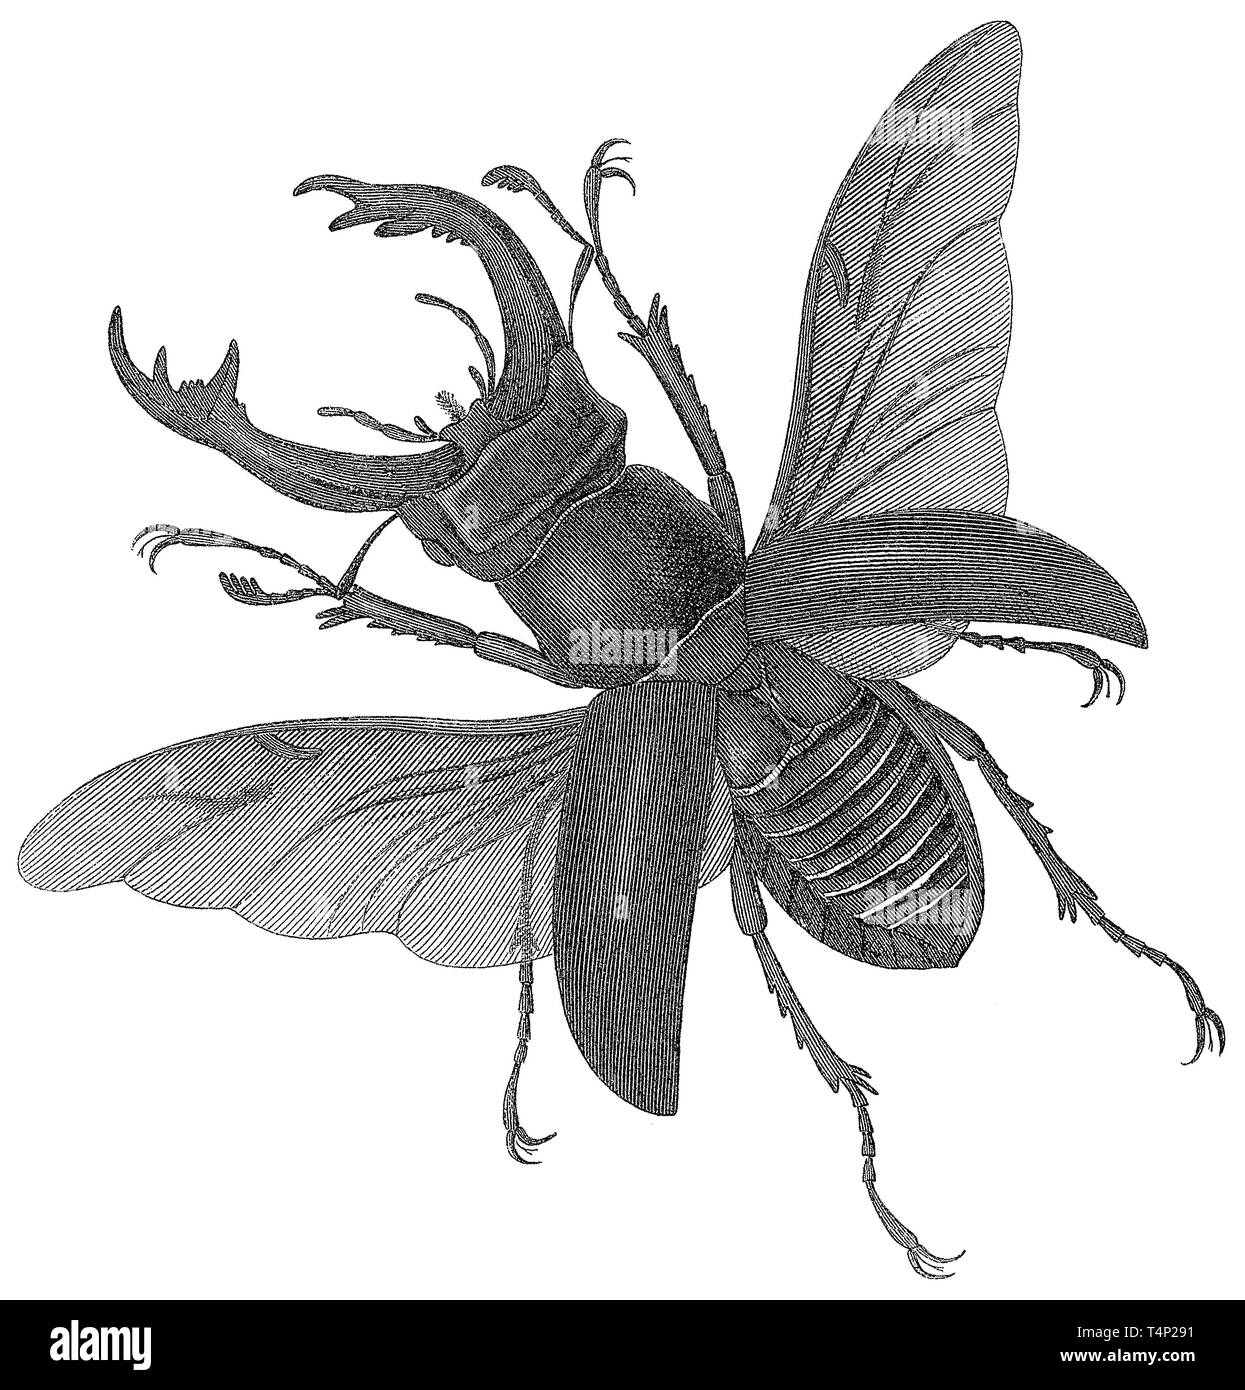 1857 engraving of a stag beetle (Lucanus cervus). Engraved by Joseph Wilson Lowry (1803-1879). - Stock Image